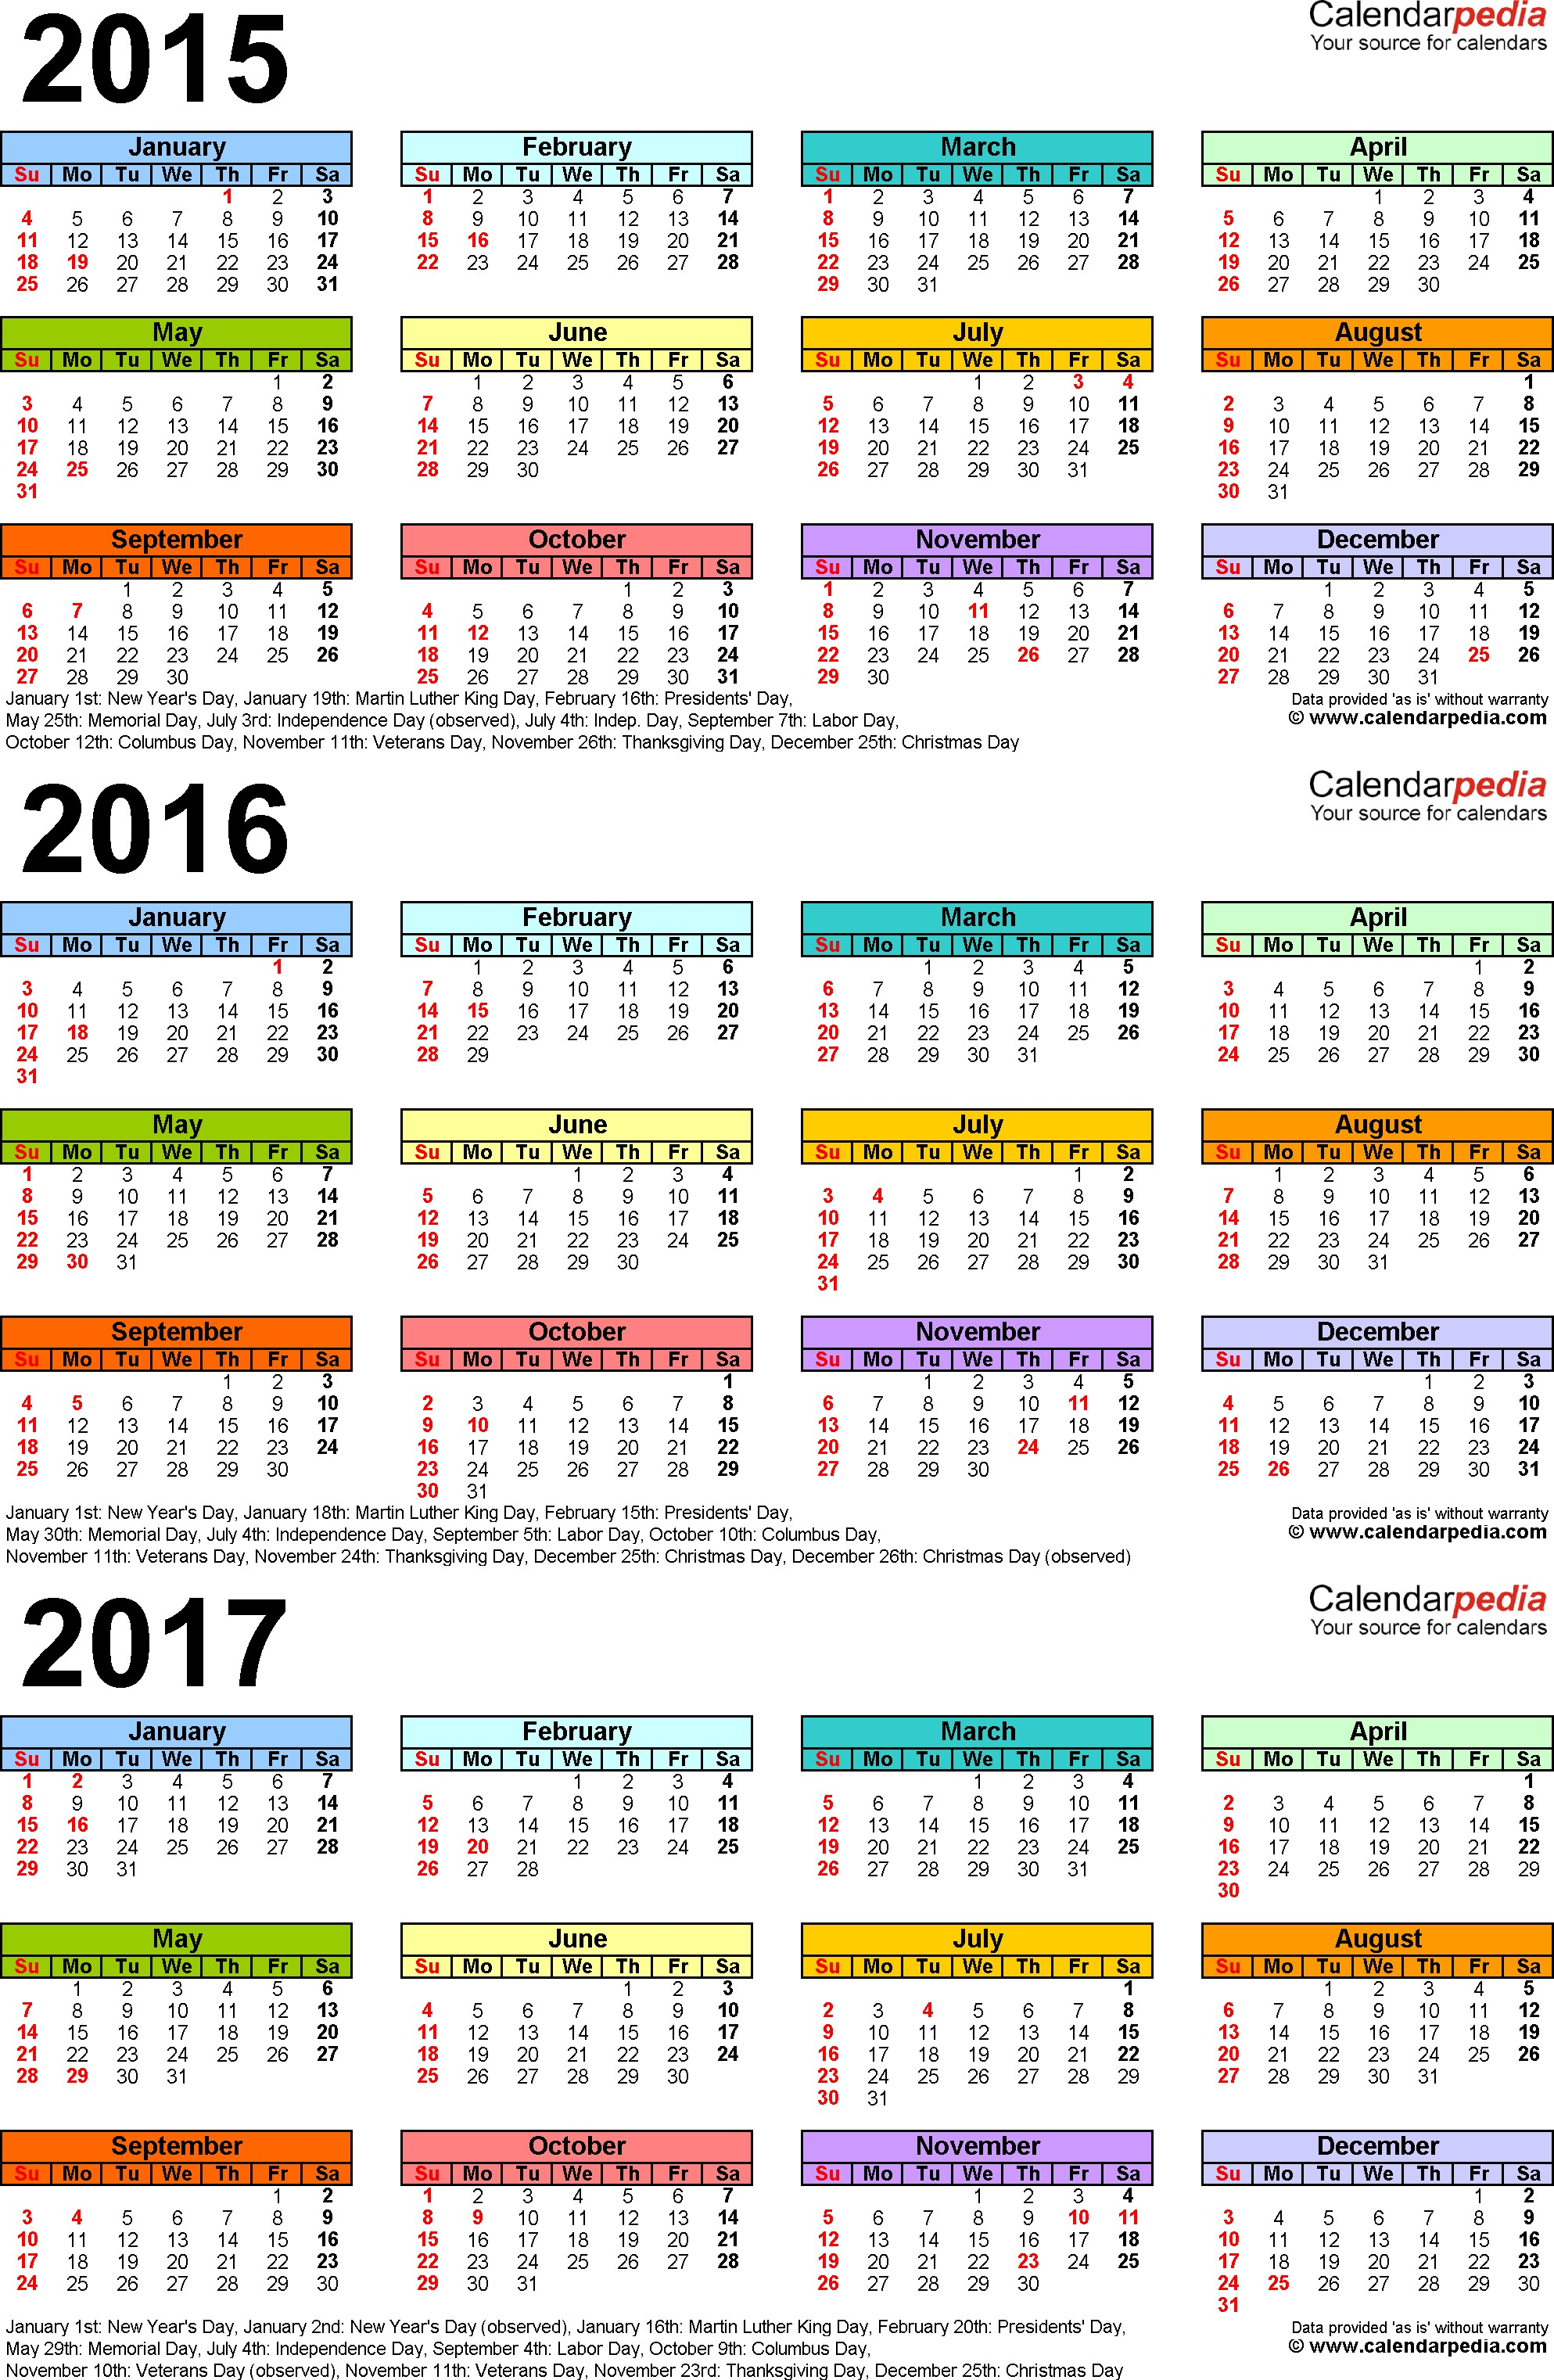 Calendar January to March 2019 Más Populares 2015 2016 2017 Calendar 4 Three Year Printable Pdf Calendars Of Calendar January to March 2019 Más Recientes Petersburg Library